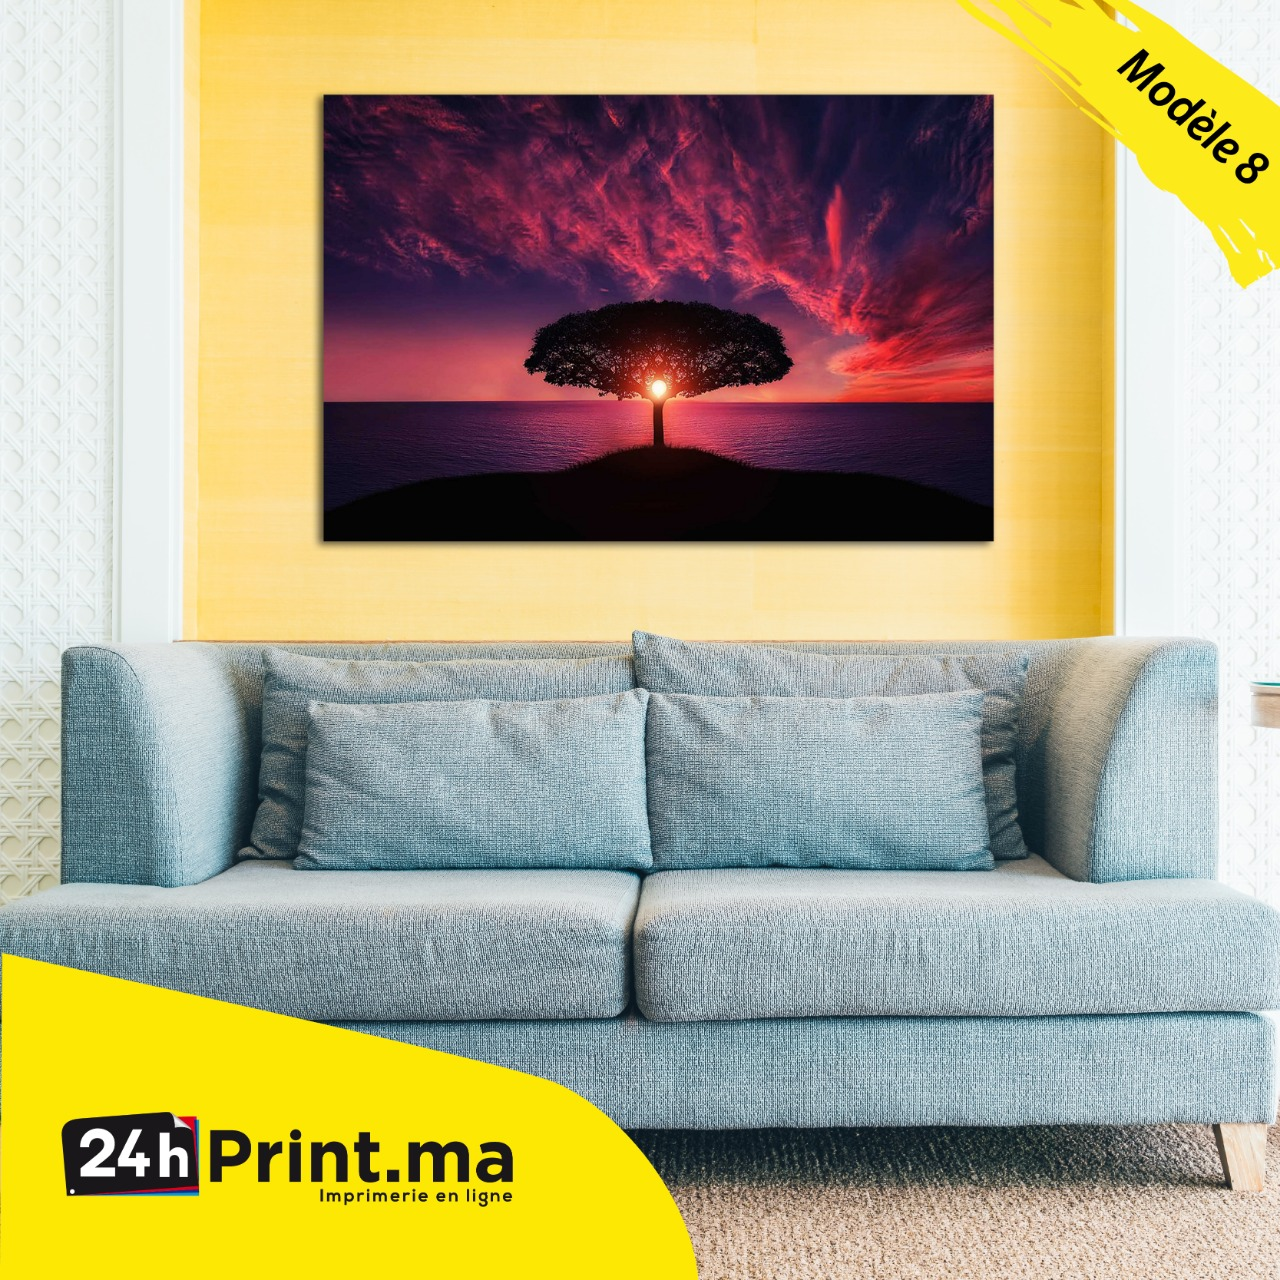 https://www.24hprint.ma/images/products_gallery_images/823.jpeg